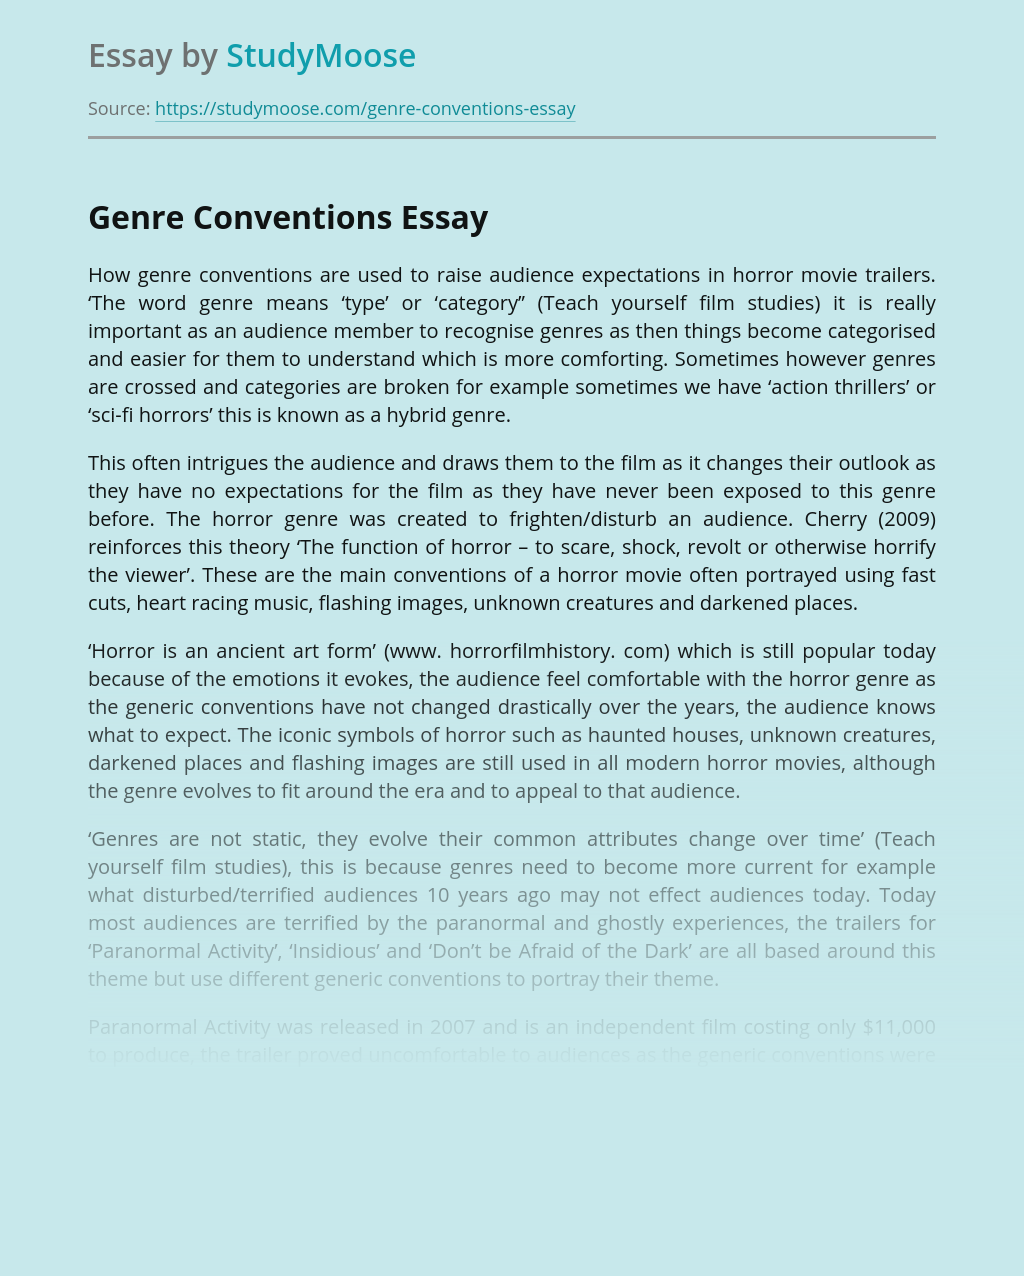 Conventions in the Horror Genre